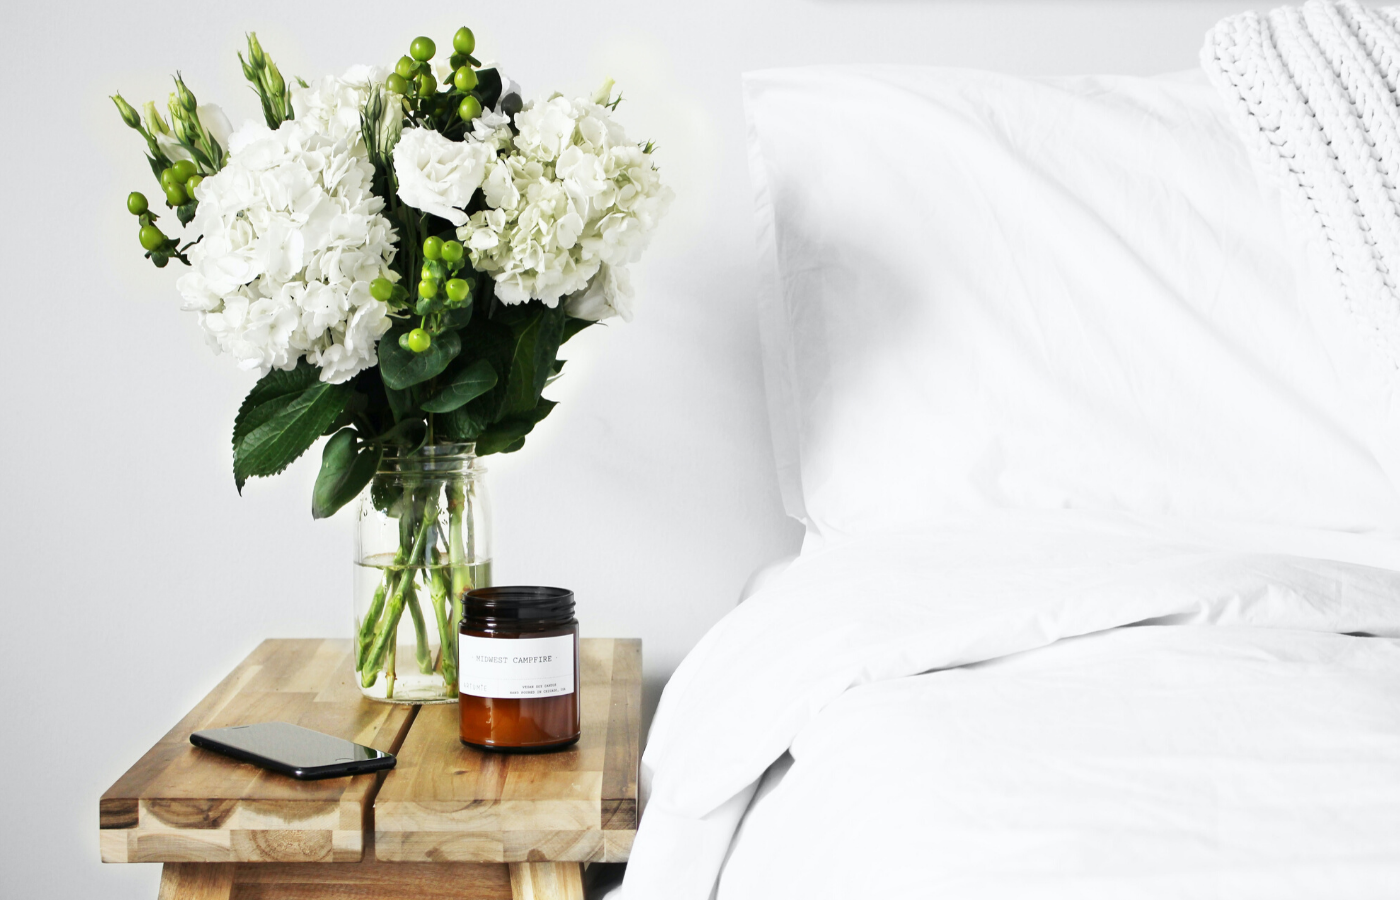 bedside table with plant | self-care